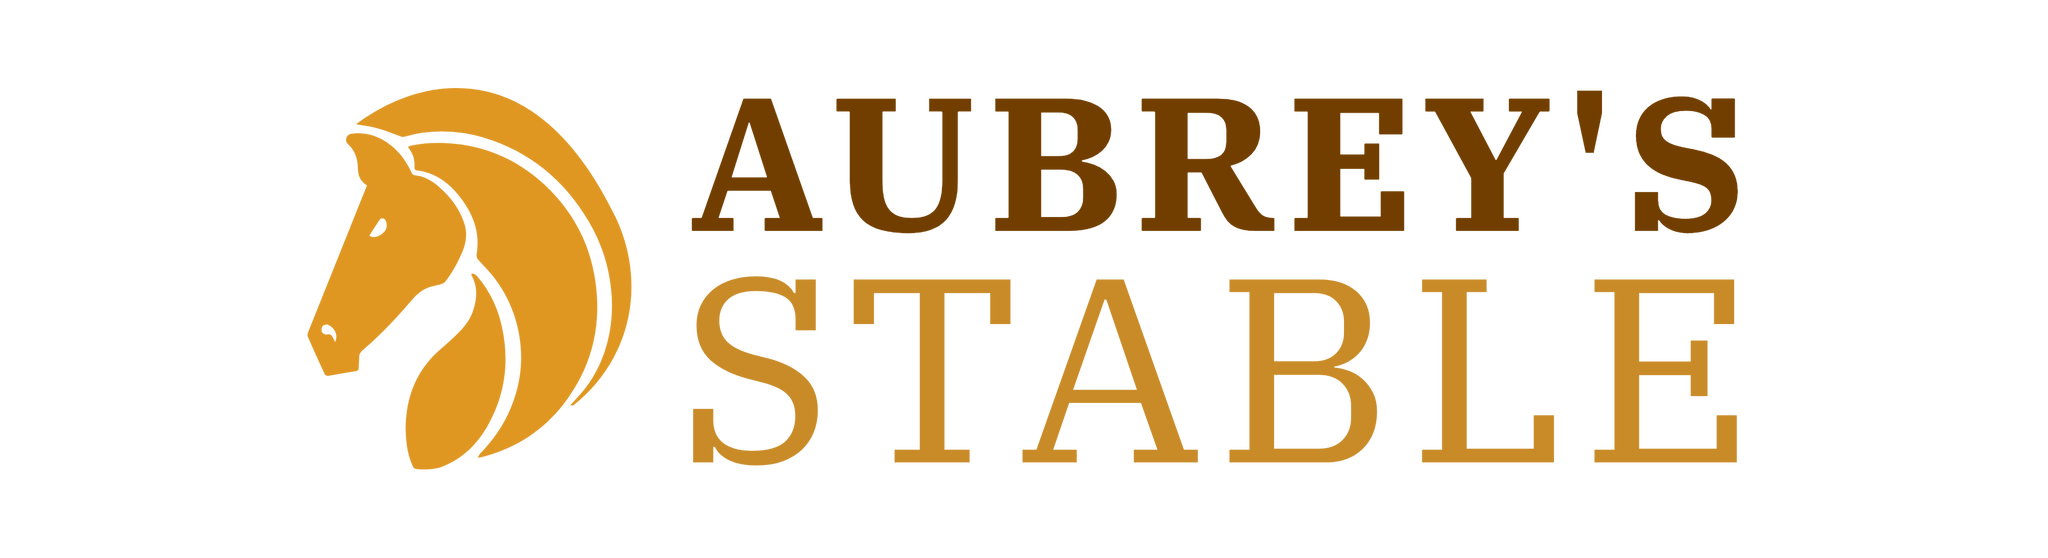 Aubrey's Stable Debuts New Website Where Equine Enthusiasts Can Find Review and Tips on Tack and Equipment